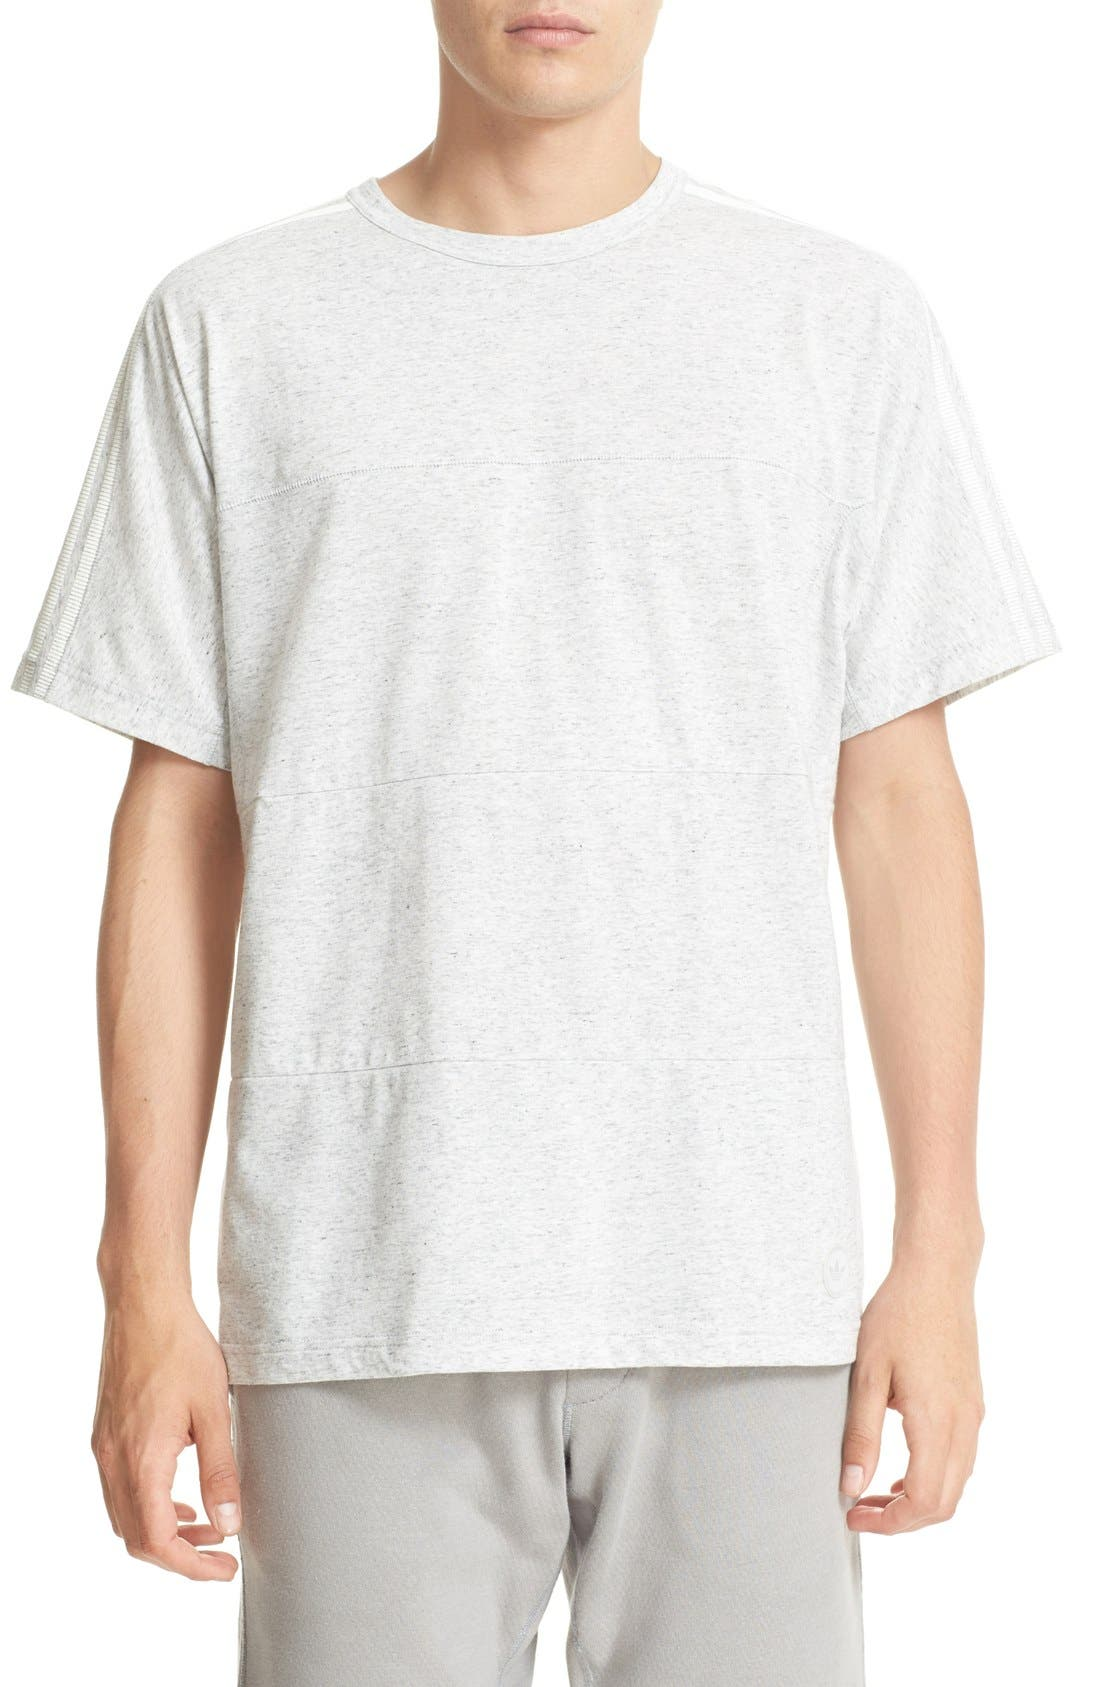 wings + horns x adidas Cotton Blend T-Shirt